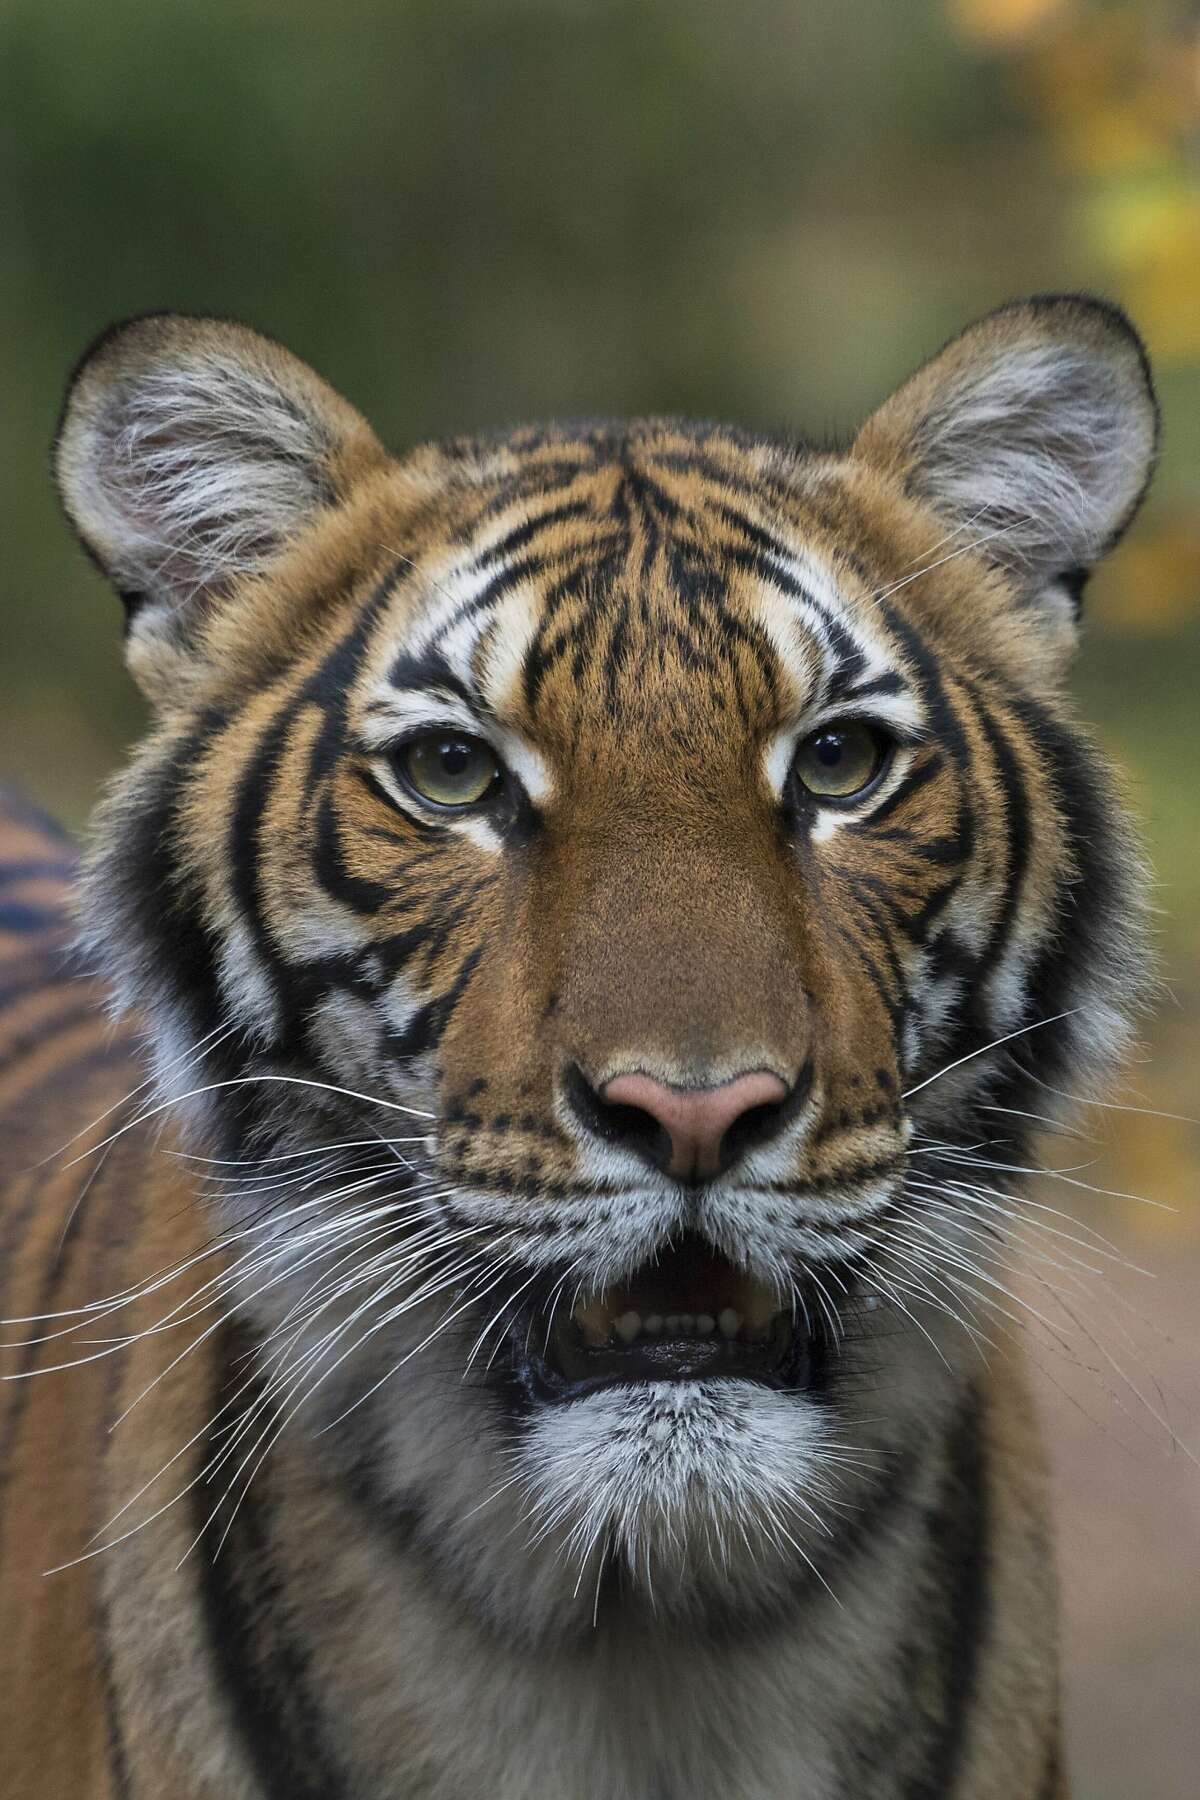 This undated photo provided by the Wildlife Conservation Society shows Nadia, a Malayan tiger at the Bronx Zoo in New York. Nadia has tested positive for the new coronavirus, in what is believed to be the first known infection in an animal in the U.S. or a tiger anywhere, federal officials and the zoo said Sunday, April 5, 2020.